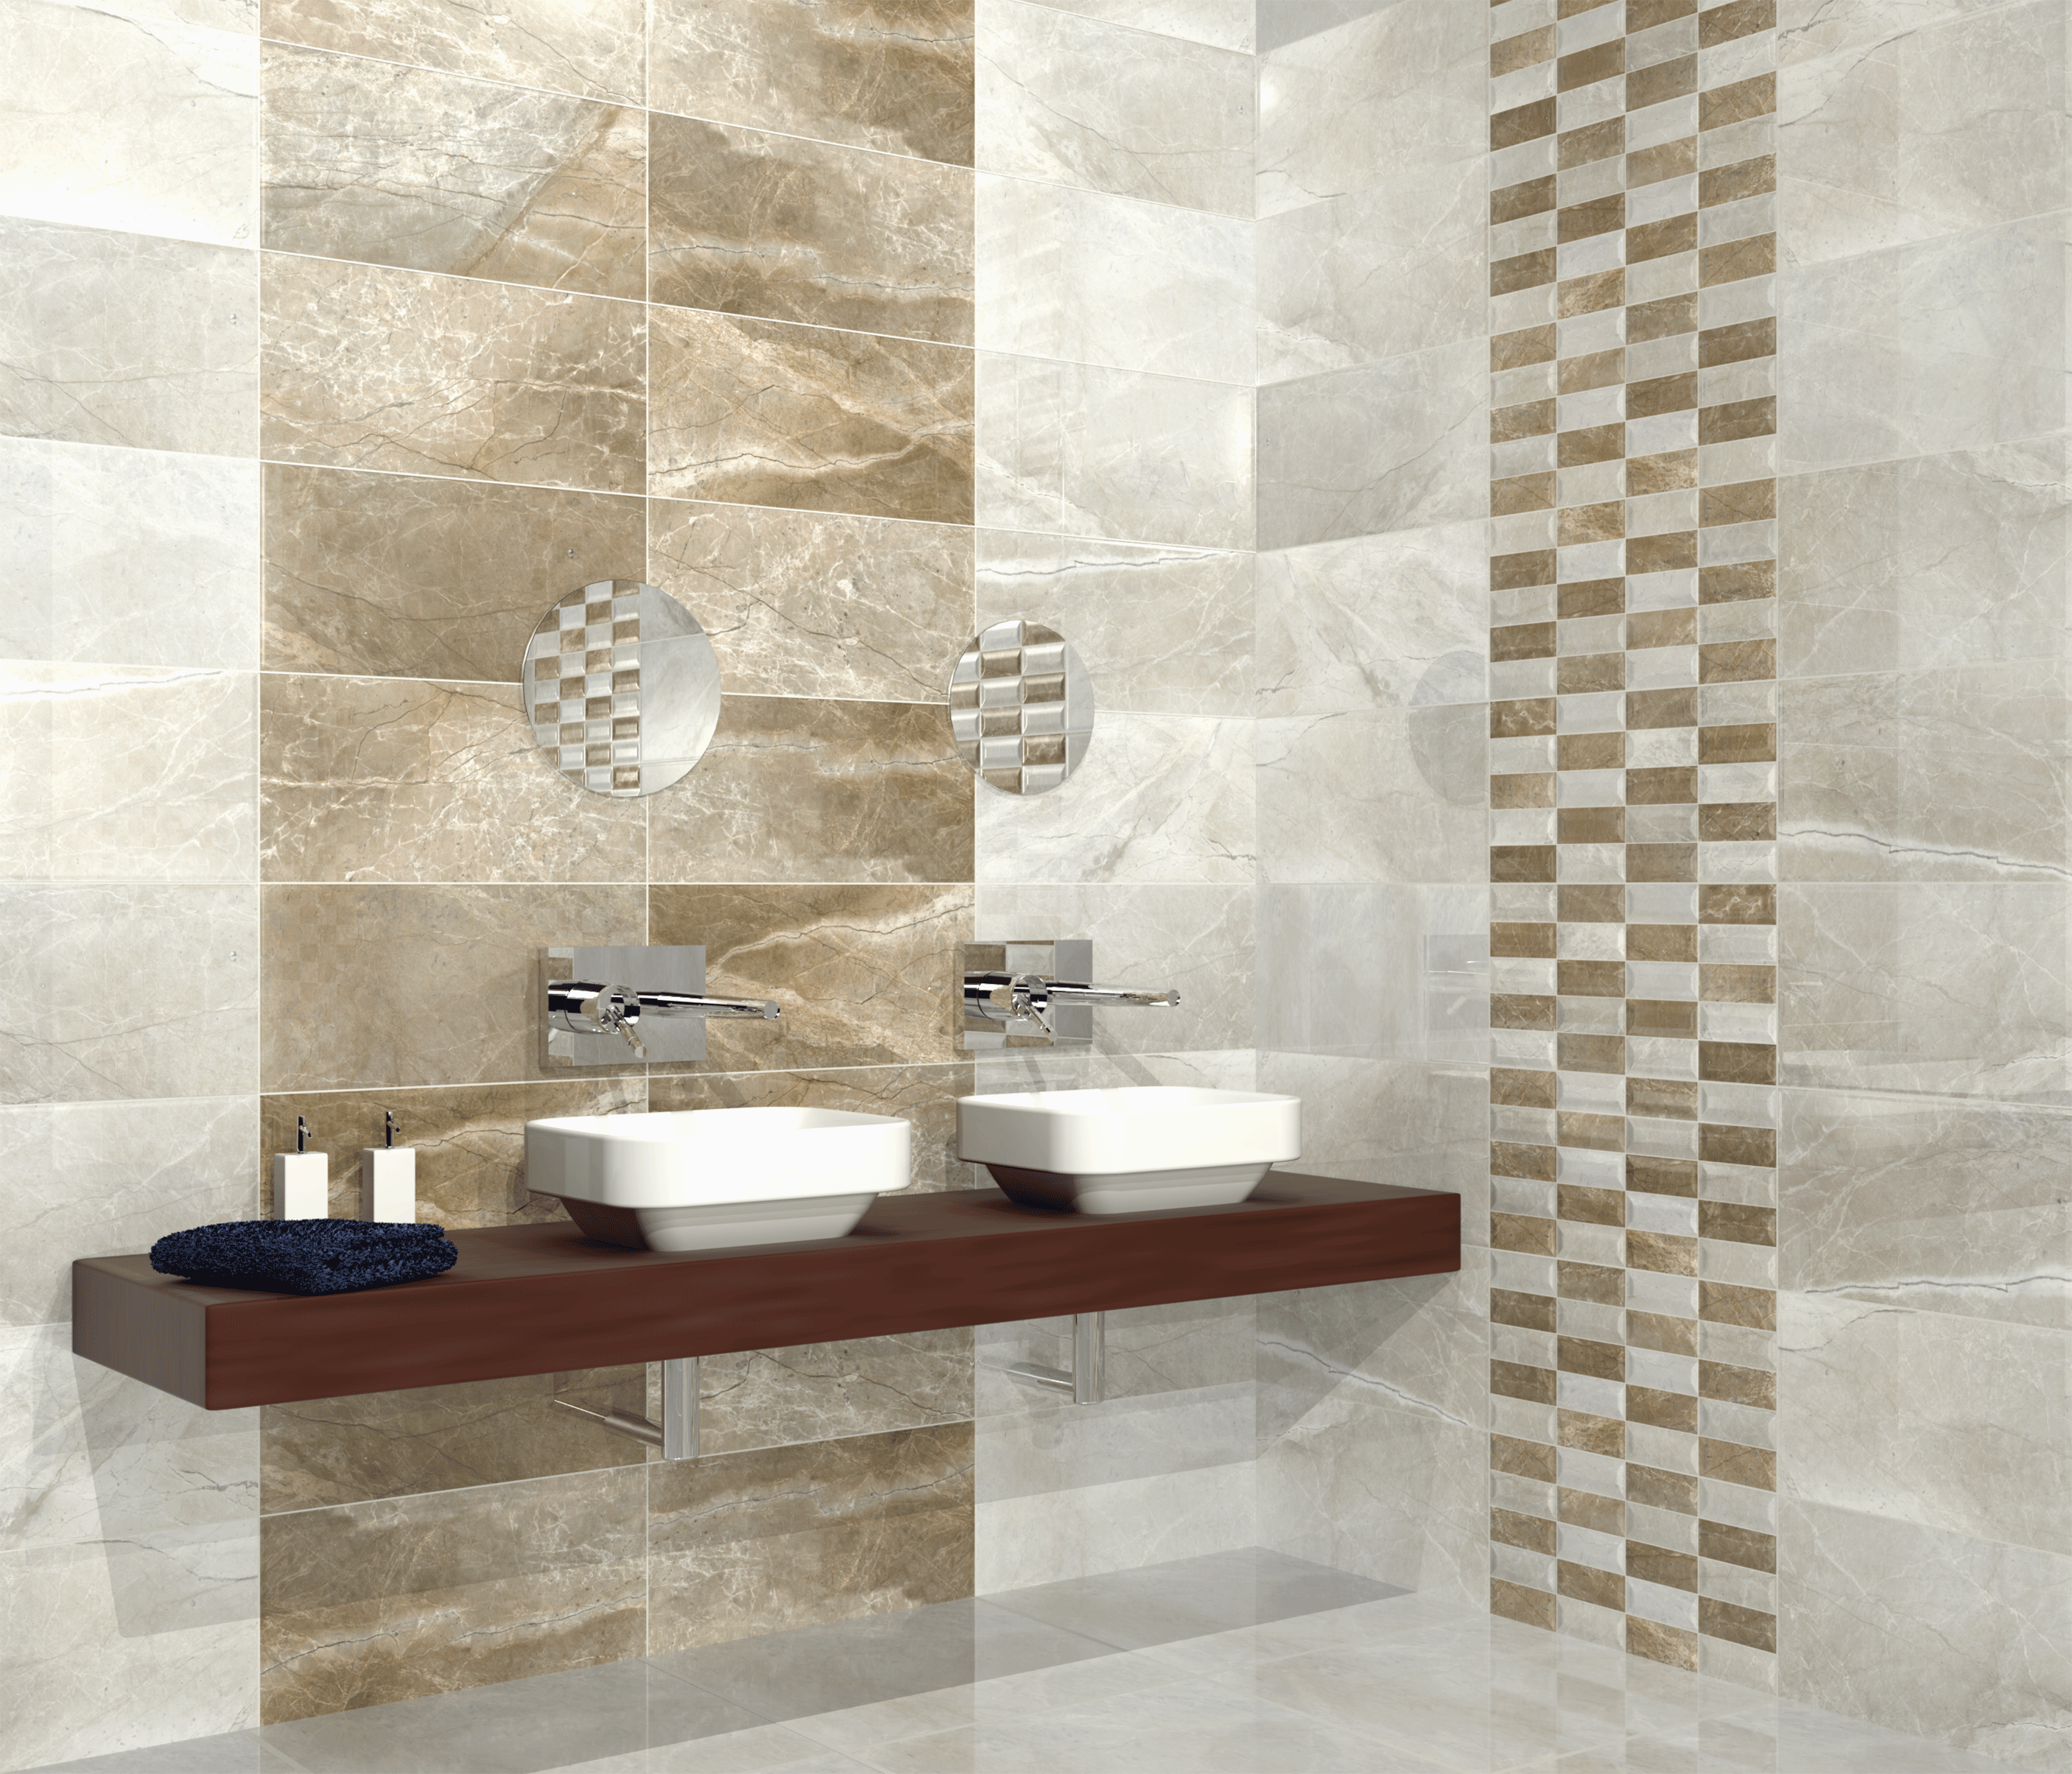 How To Tile A Bathroom Walls As Well As Shower Tub Area Tiles